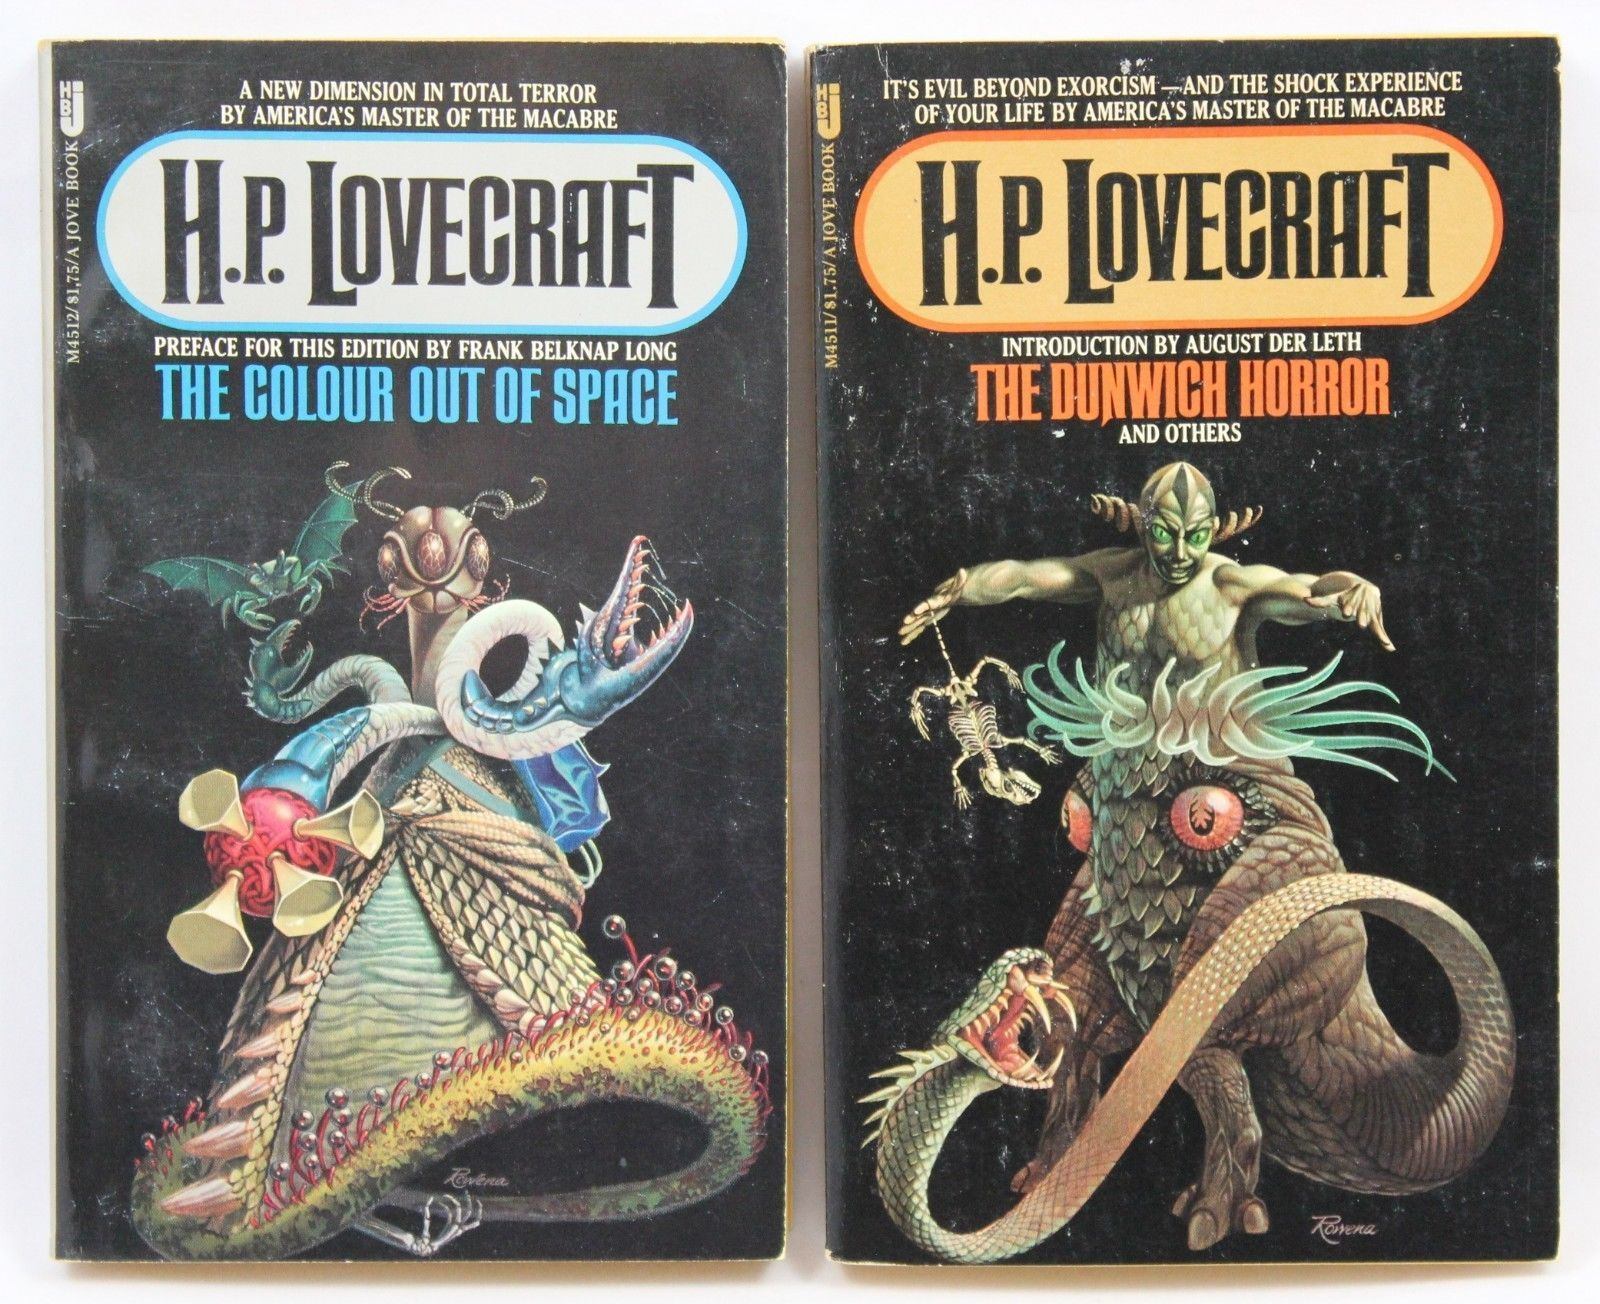 H.P. Lovecrafts The Dunwich Horror #2 - The Dunwich